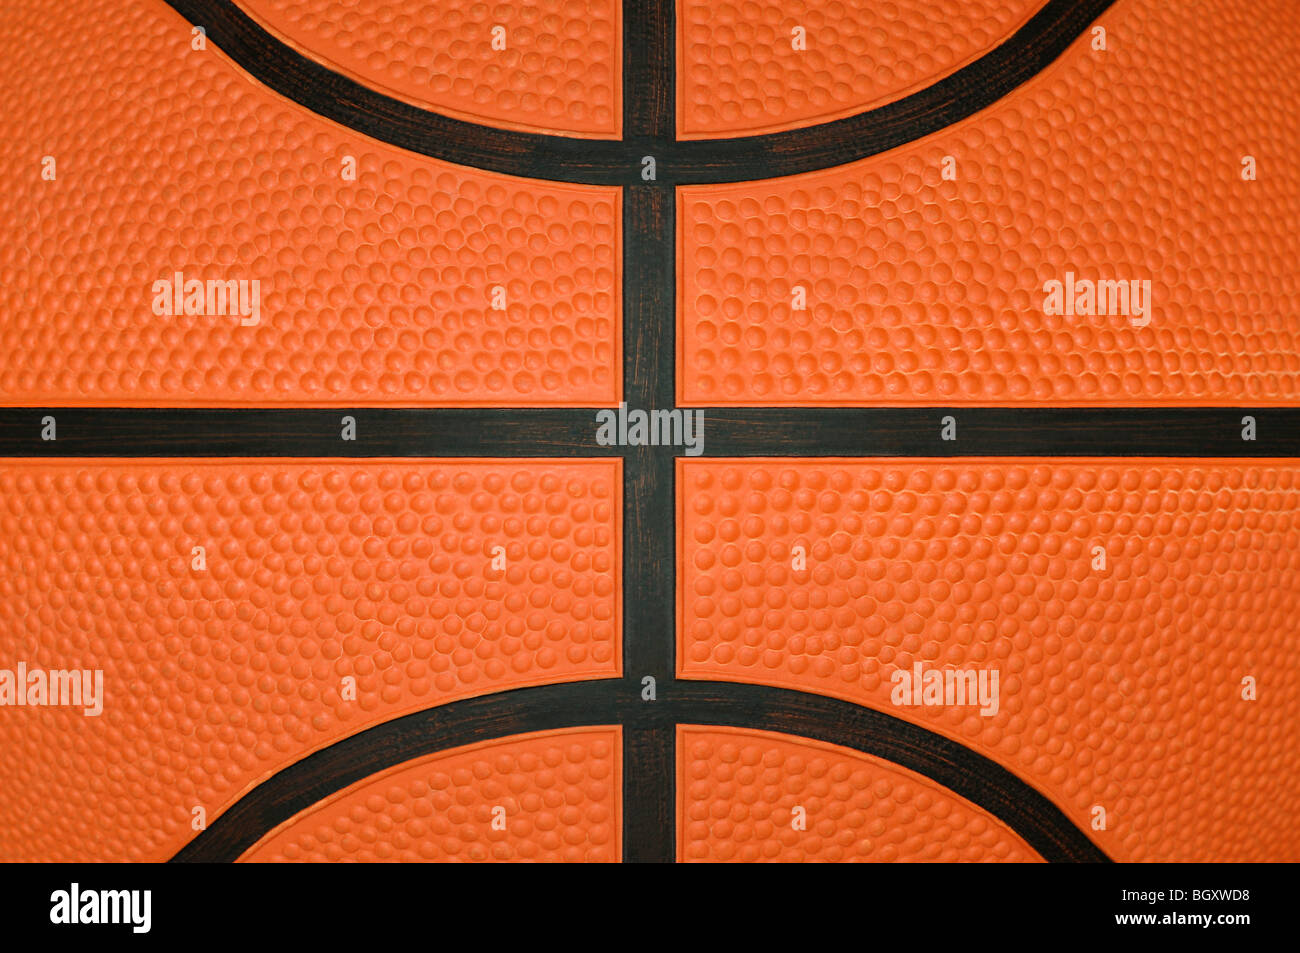 Basketball hautnah Stockfoto